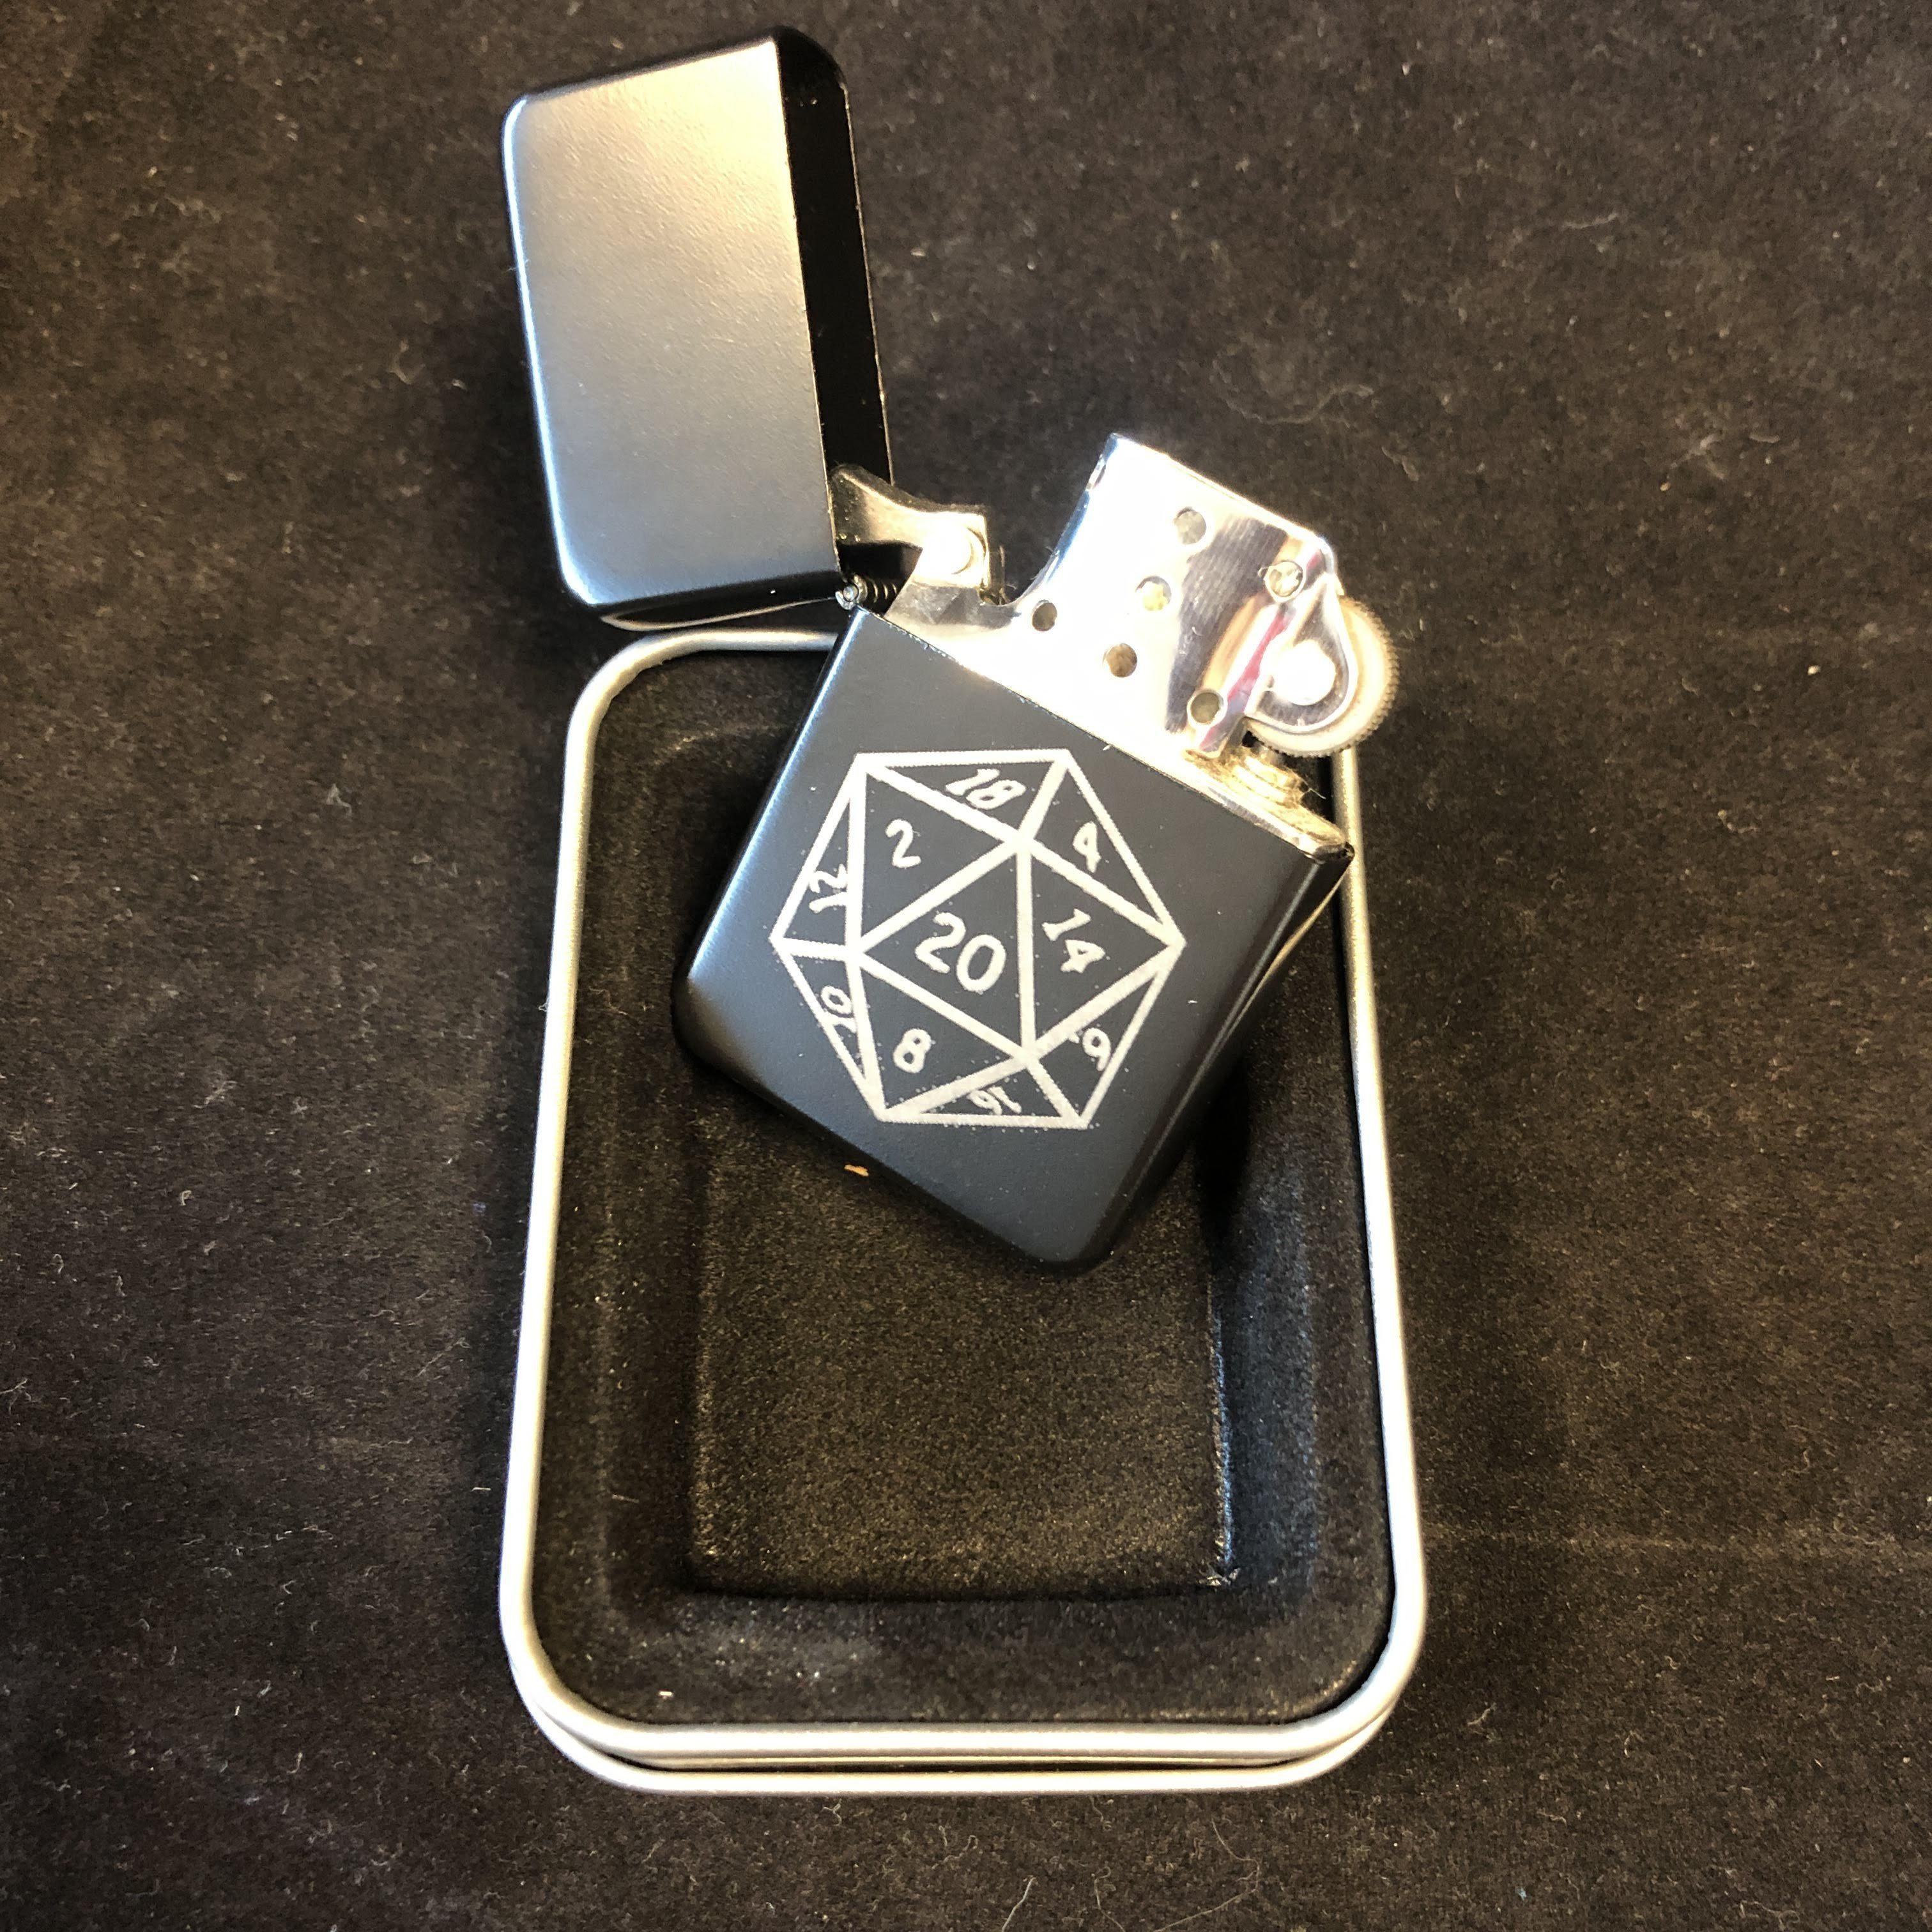 D20 Dungeons and Dragons theme Laser engraved lighter: Red Berry Crafts